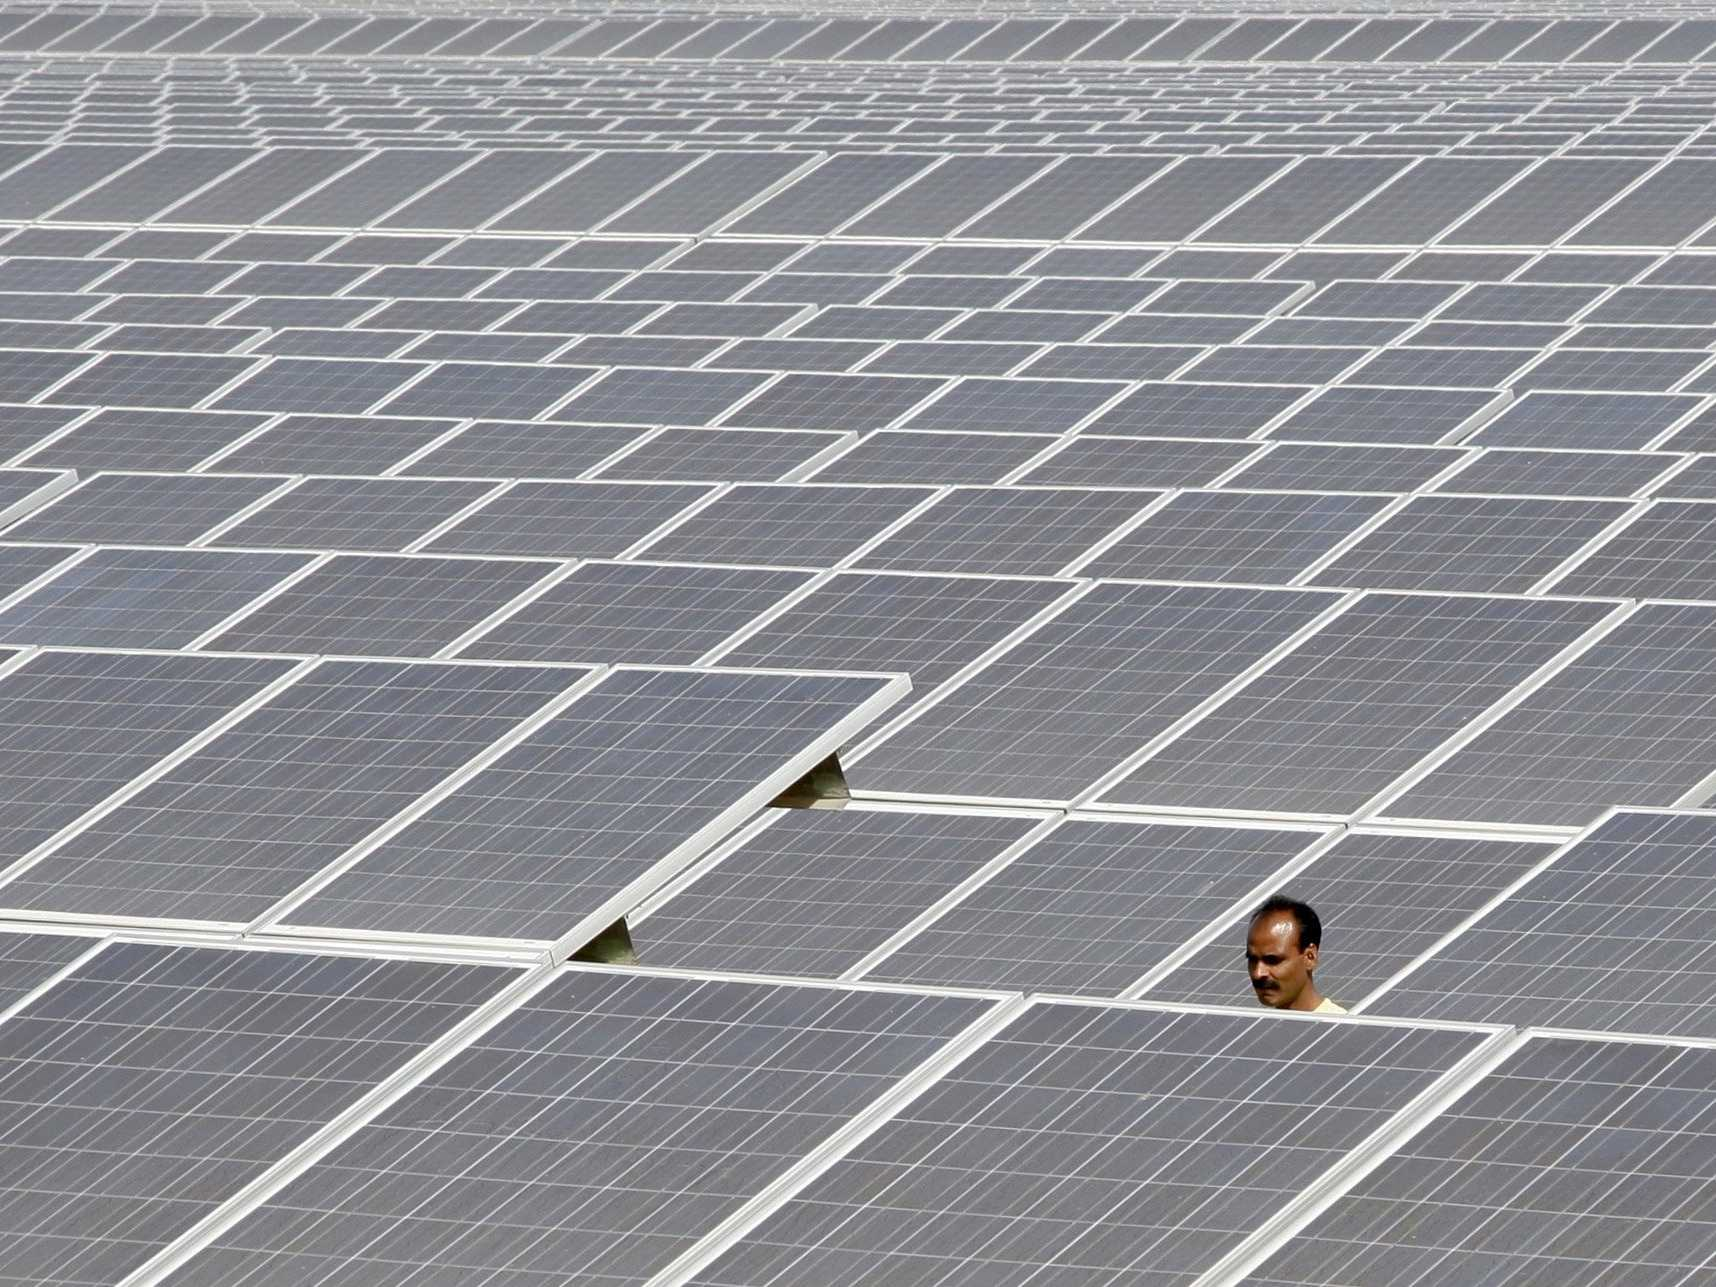 Global pension funds warm to India's solar power ambitions | Eco News